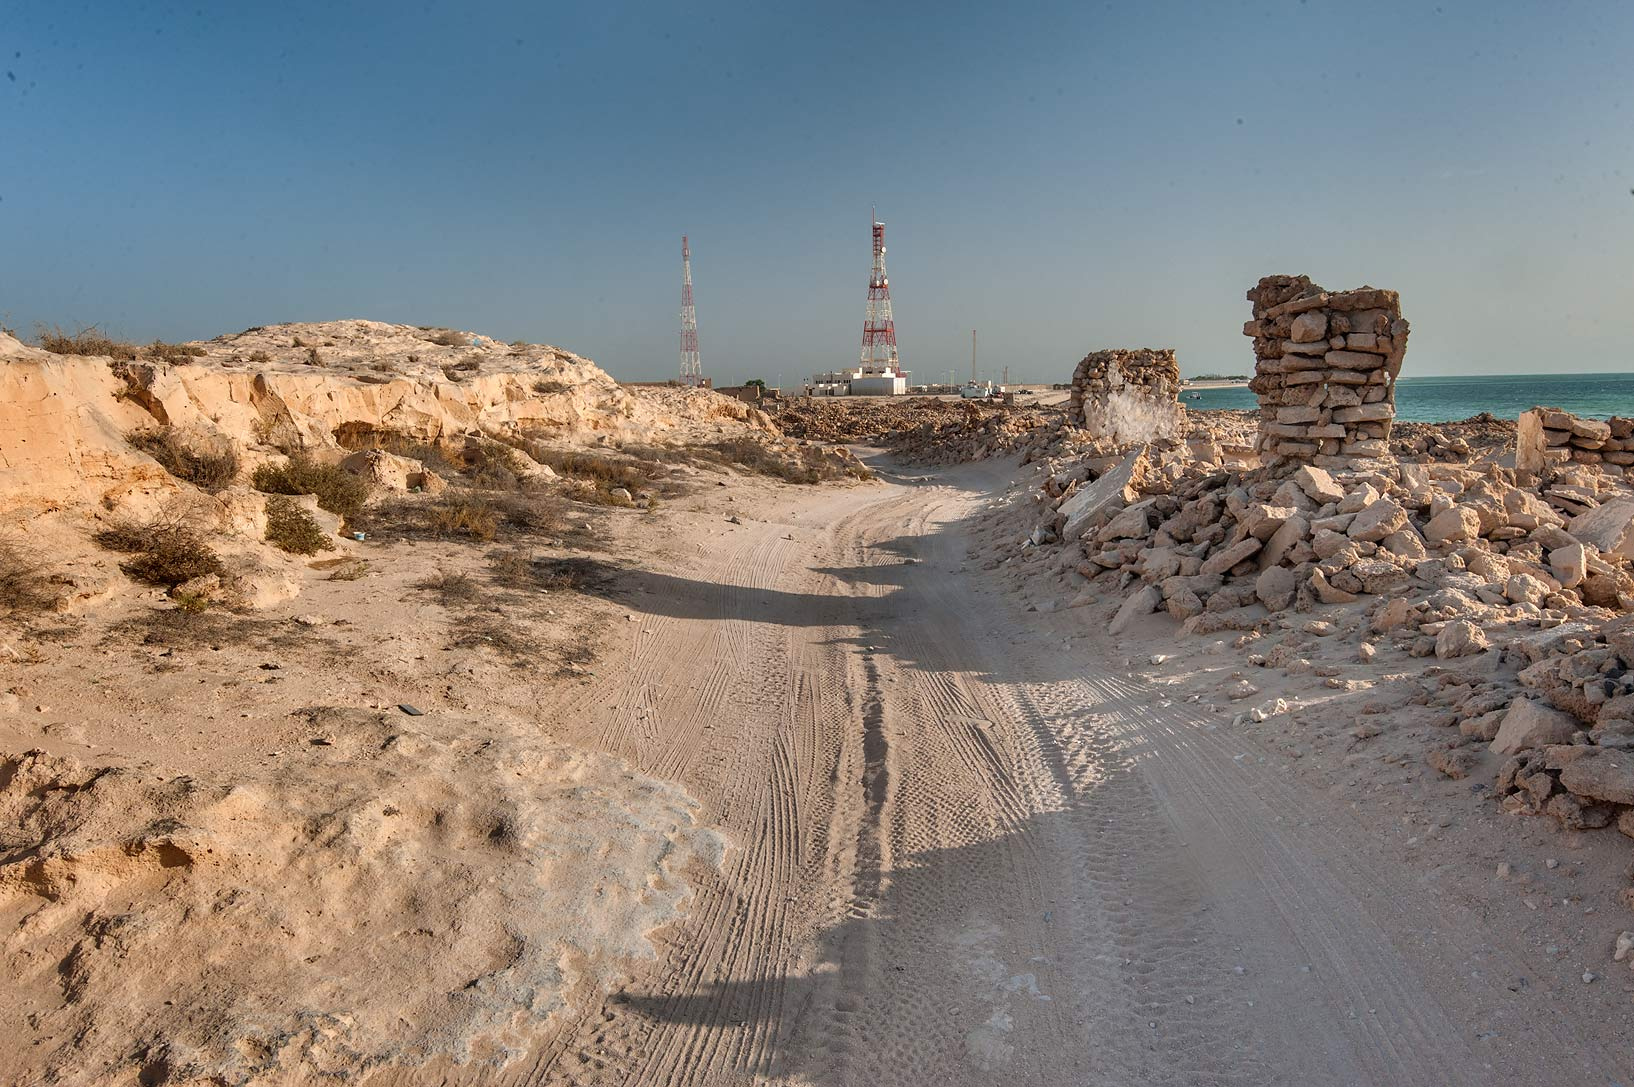 Road between a jebel (stone hill) and old fishing...eastern coast, Ash Shamal area. Qatar